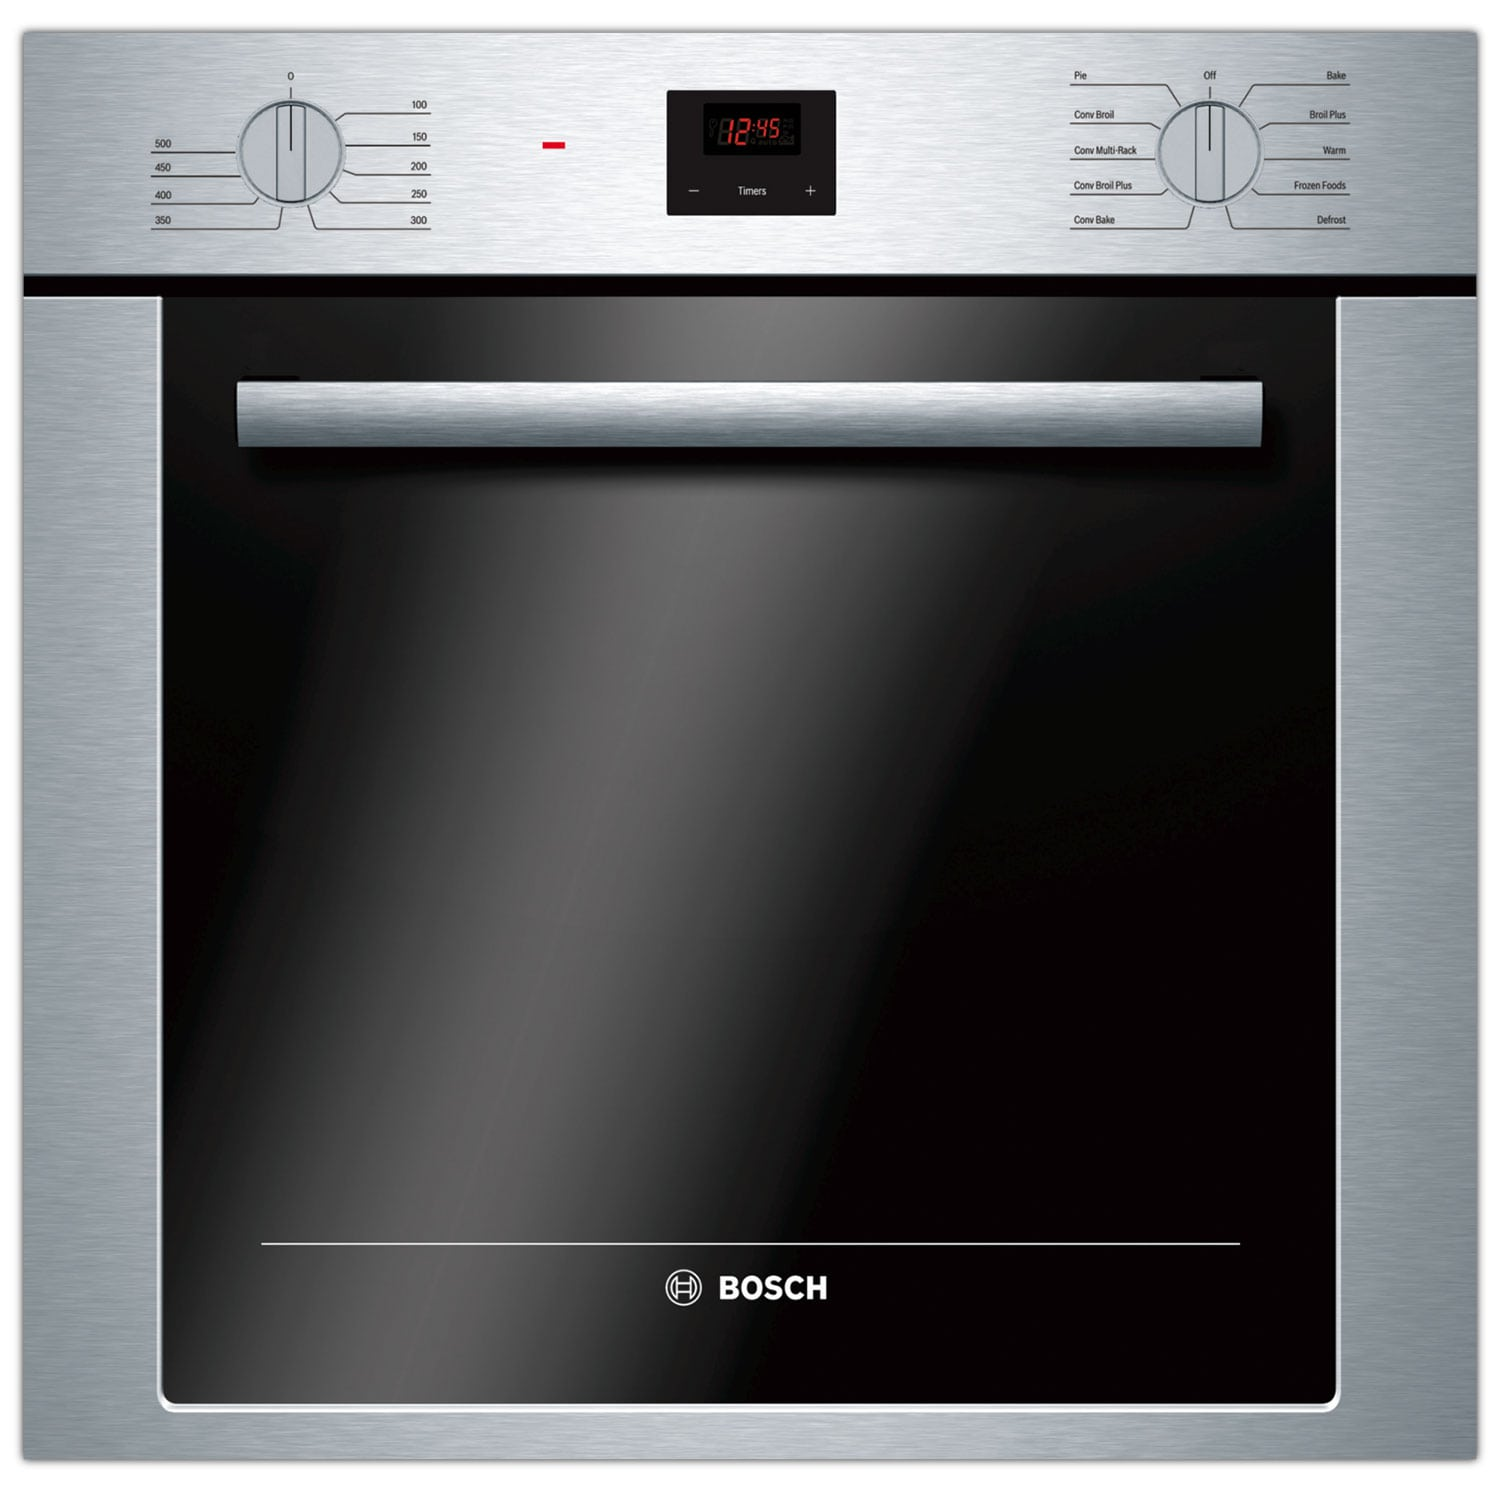 Cooking Products - Bosch Stainless Steel Wall Oven (2.8 Cu. Ft.) - HBE5451UC